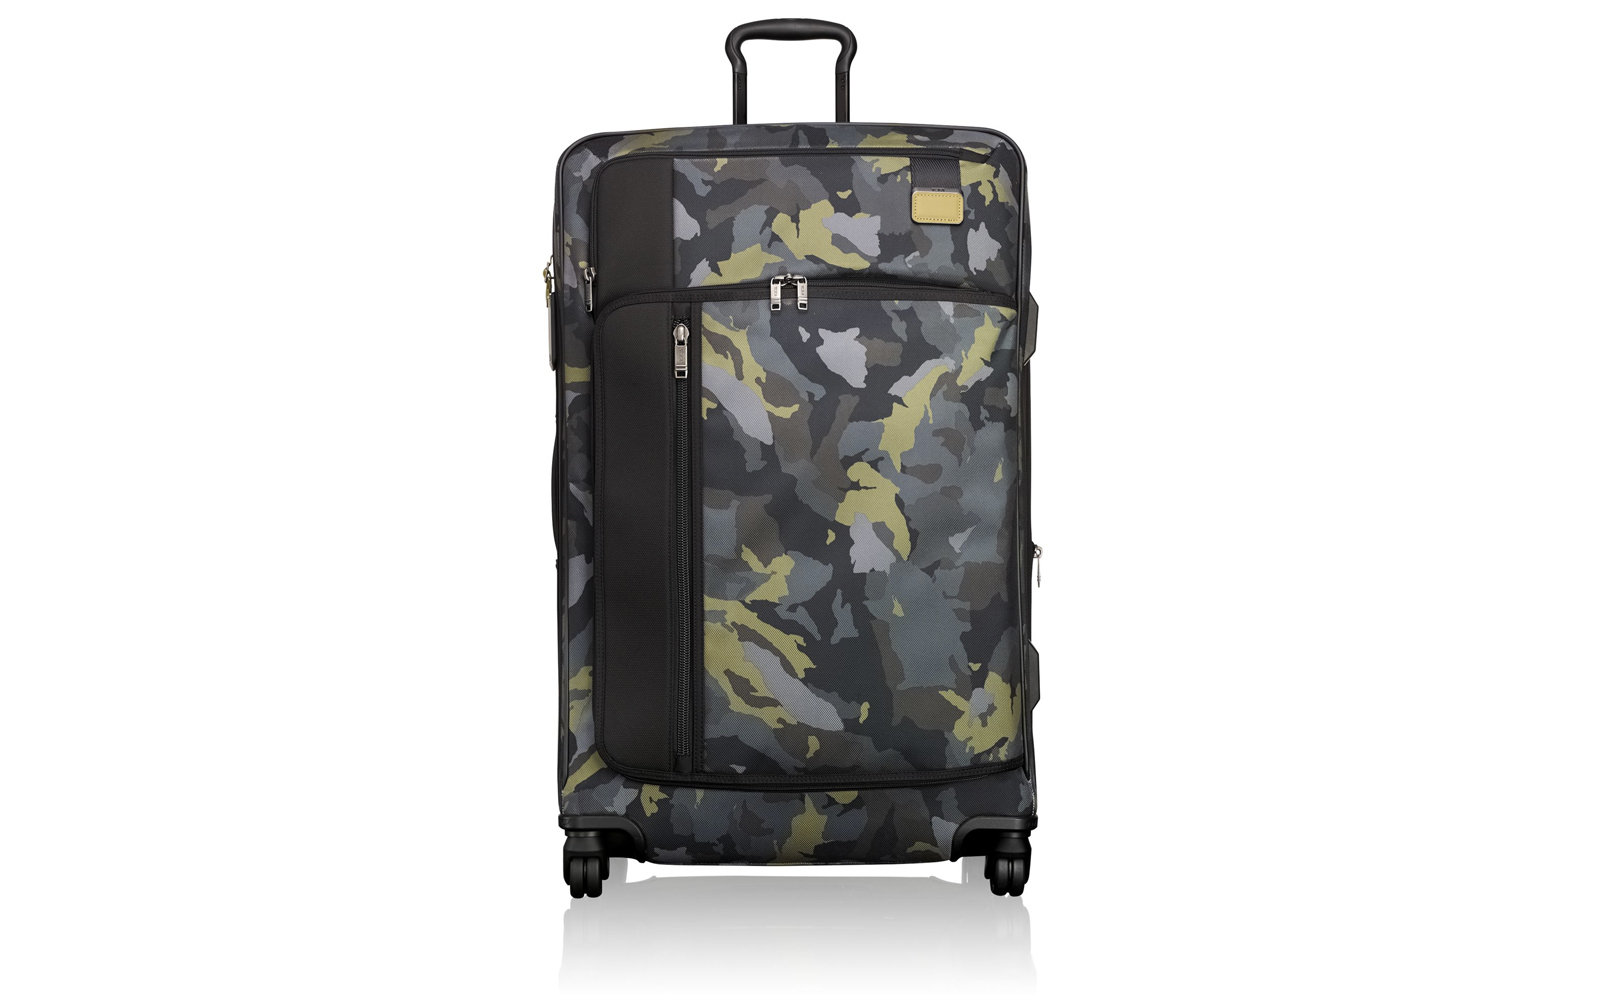 Tumi Semi Annual Luggage Sale